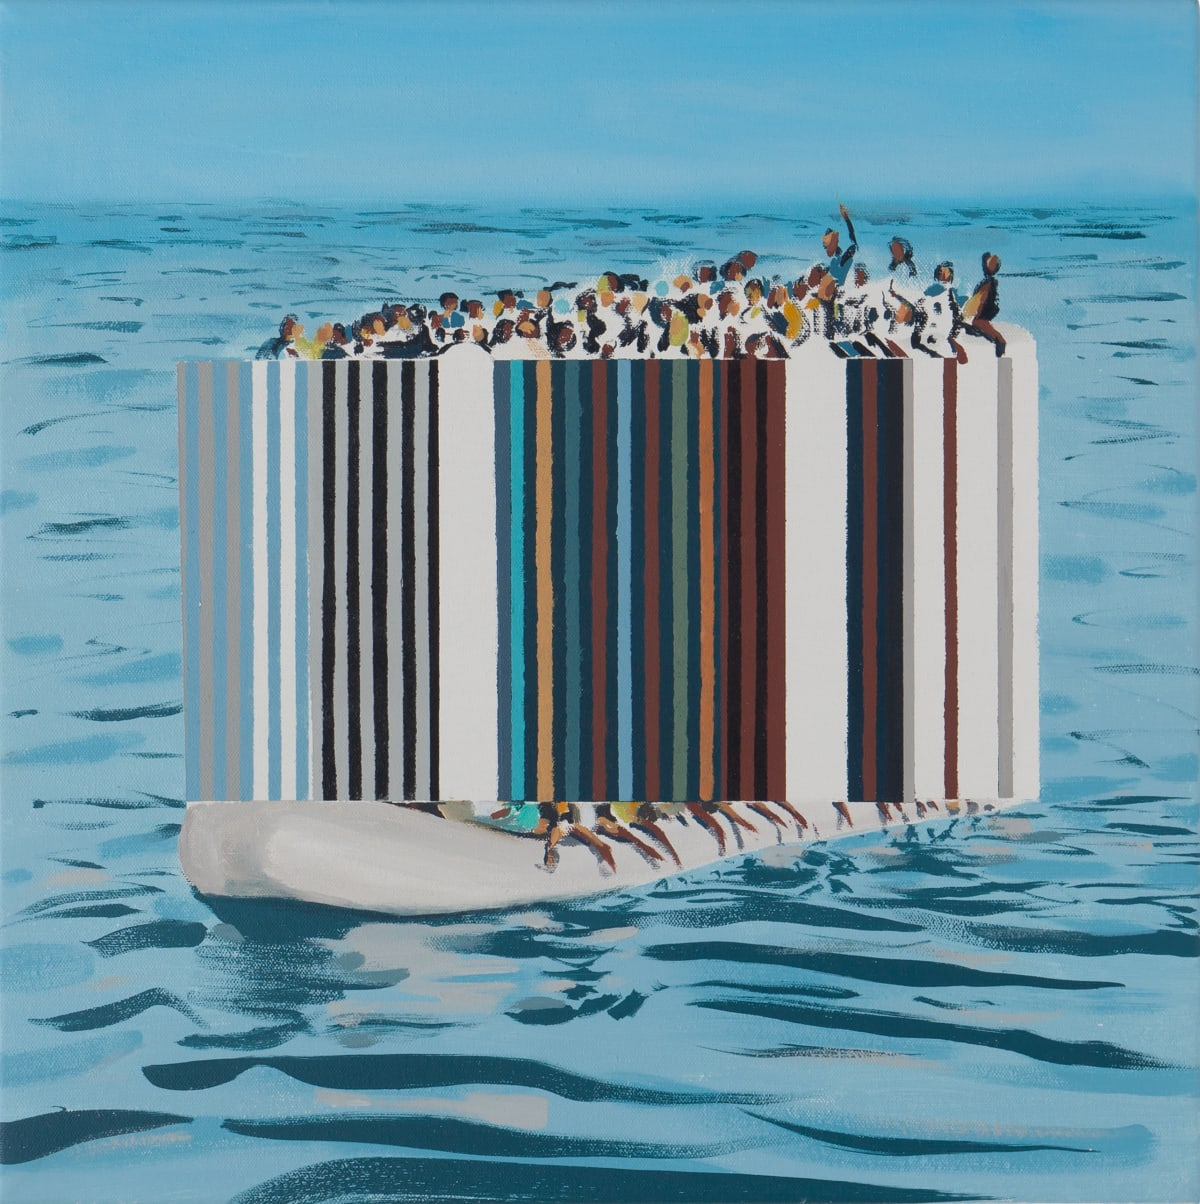 Darren Coffield, Against the Tide, 2019. Acrylic on canvas, 100 x 100 cm.